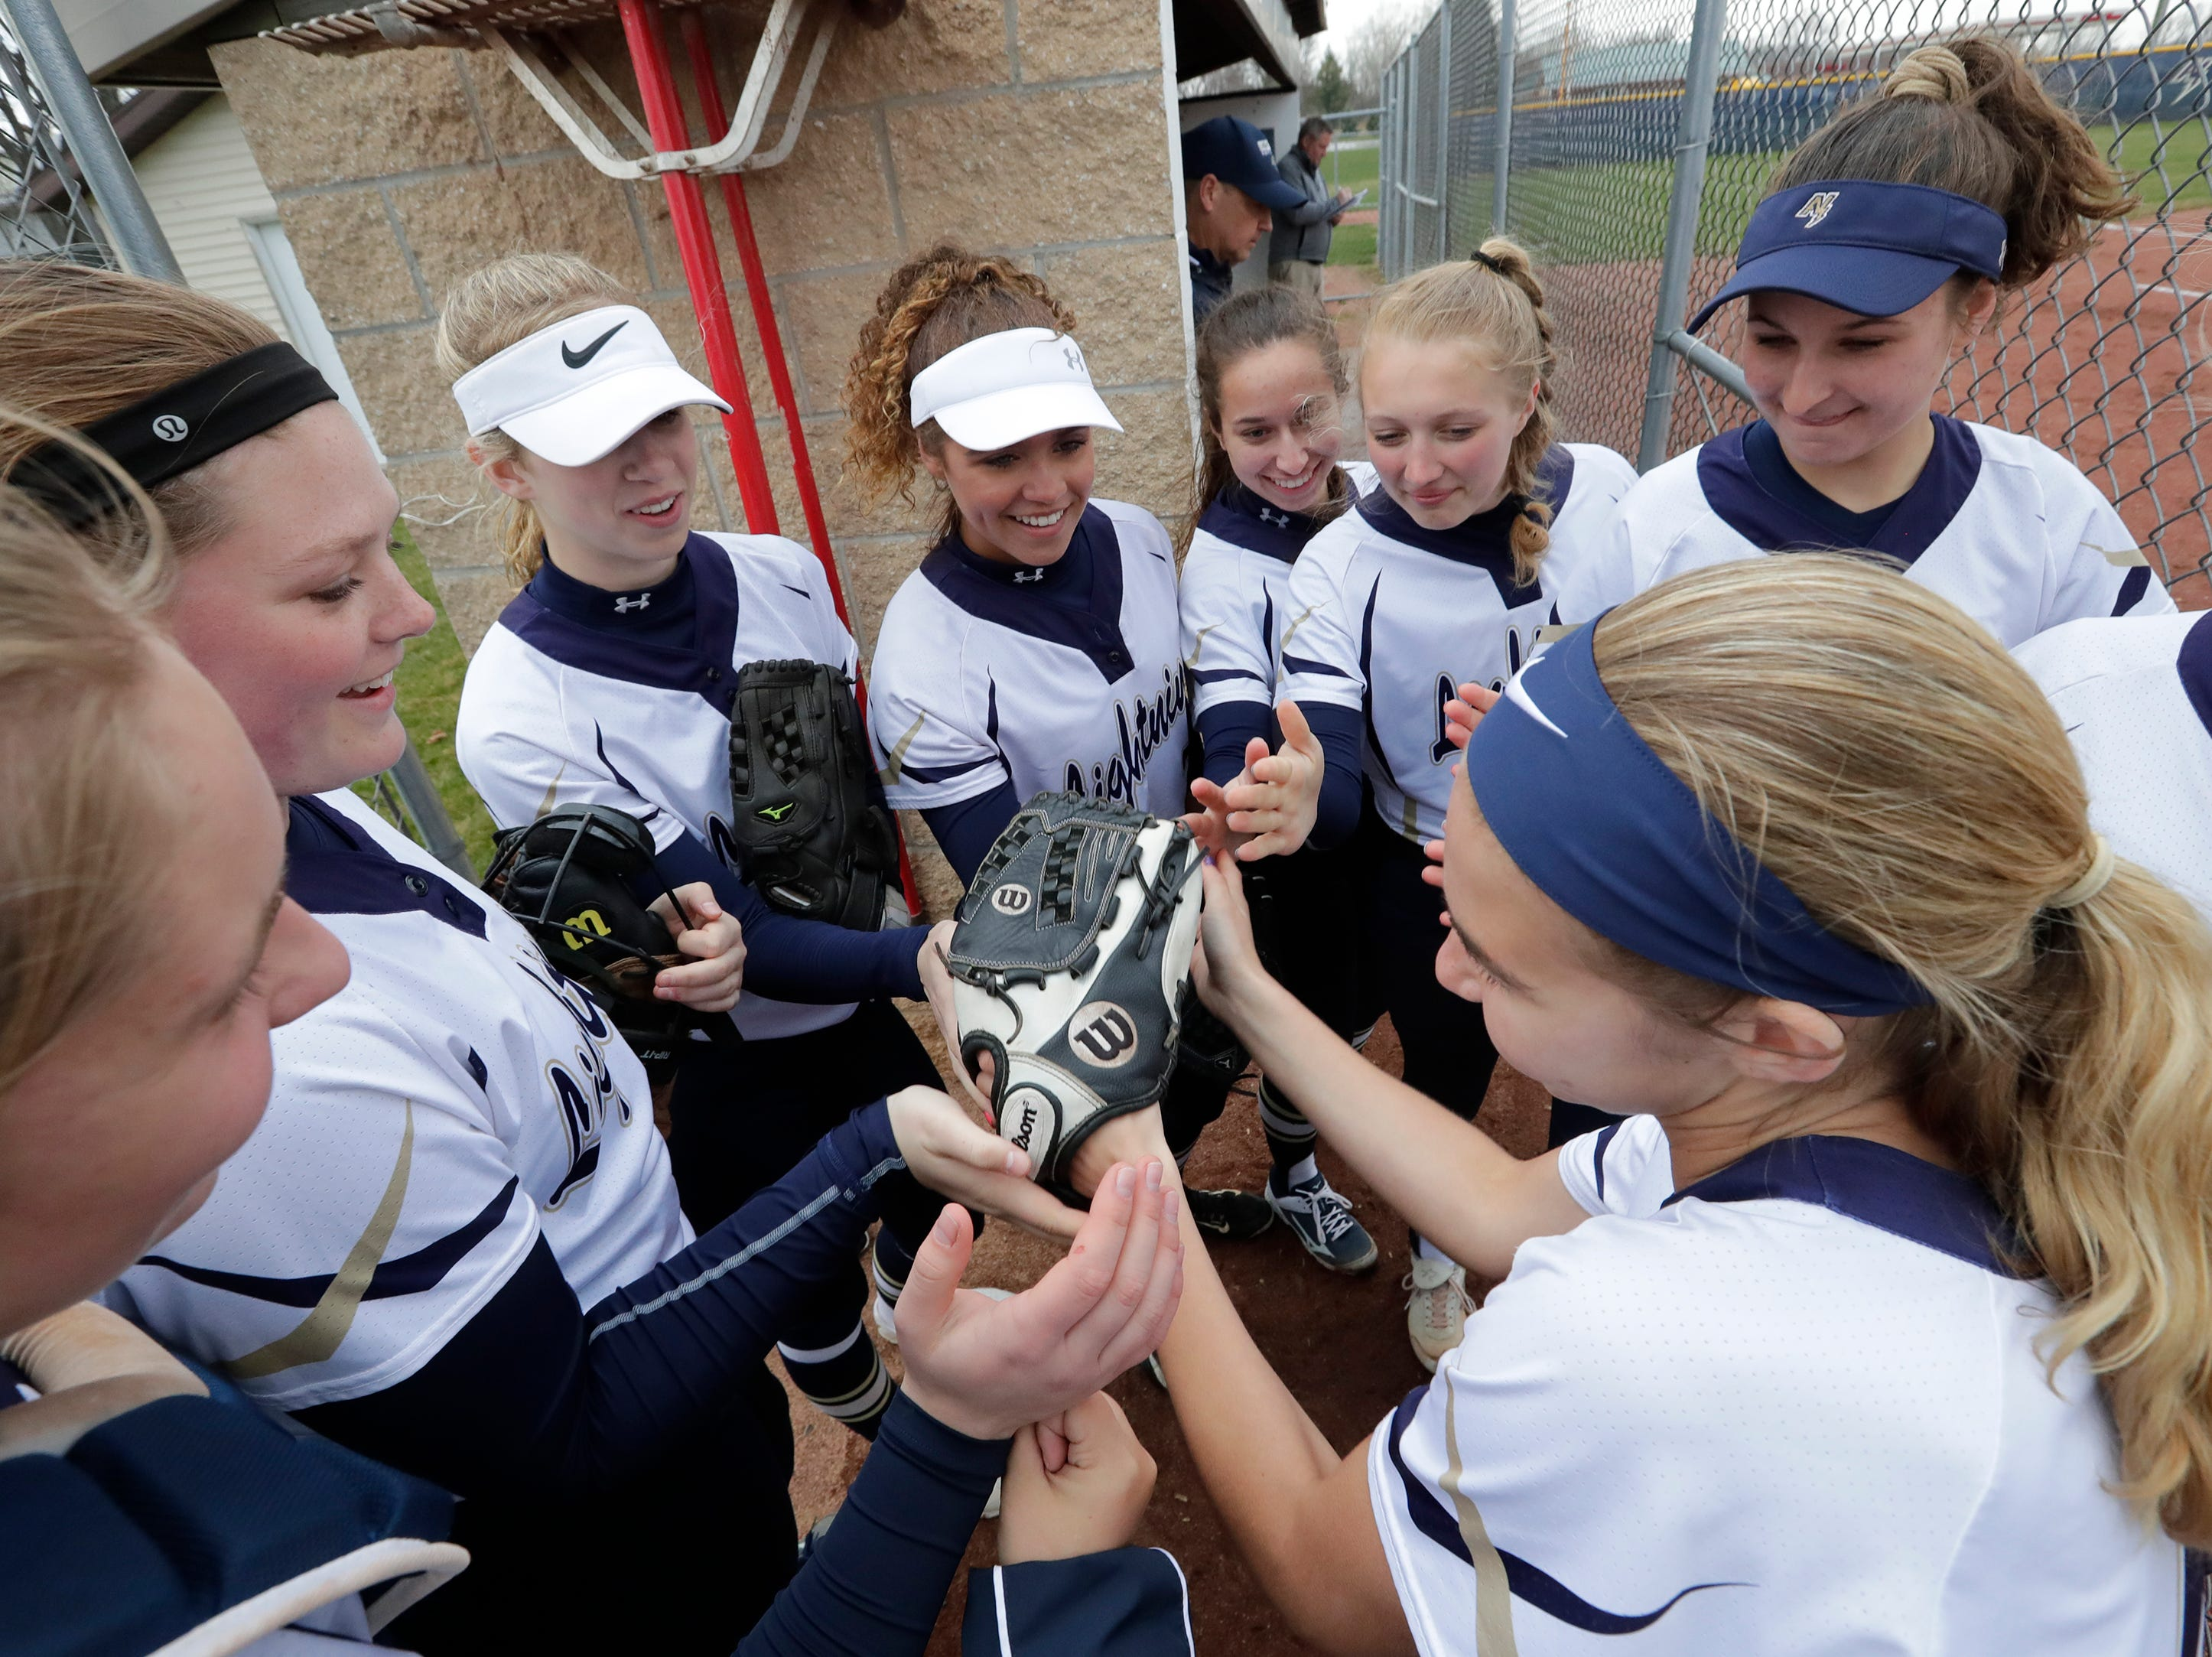 Appleton North High School's support each other as they are each announced against Hortonville High School at the start of their girls softball game Monday, April 22, 2019, in Appleton, Wis. 